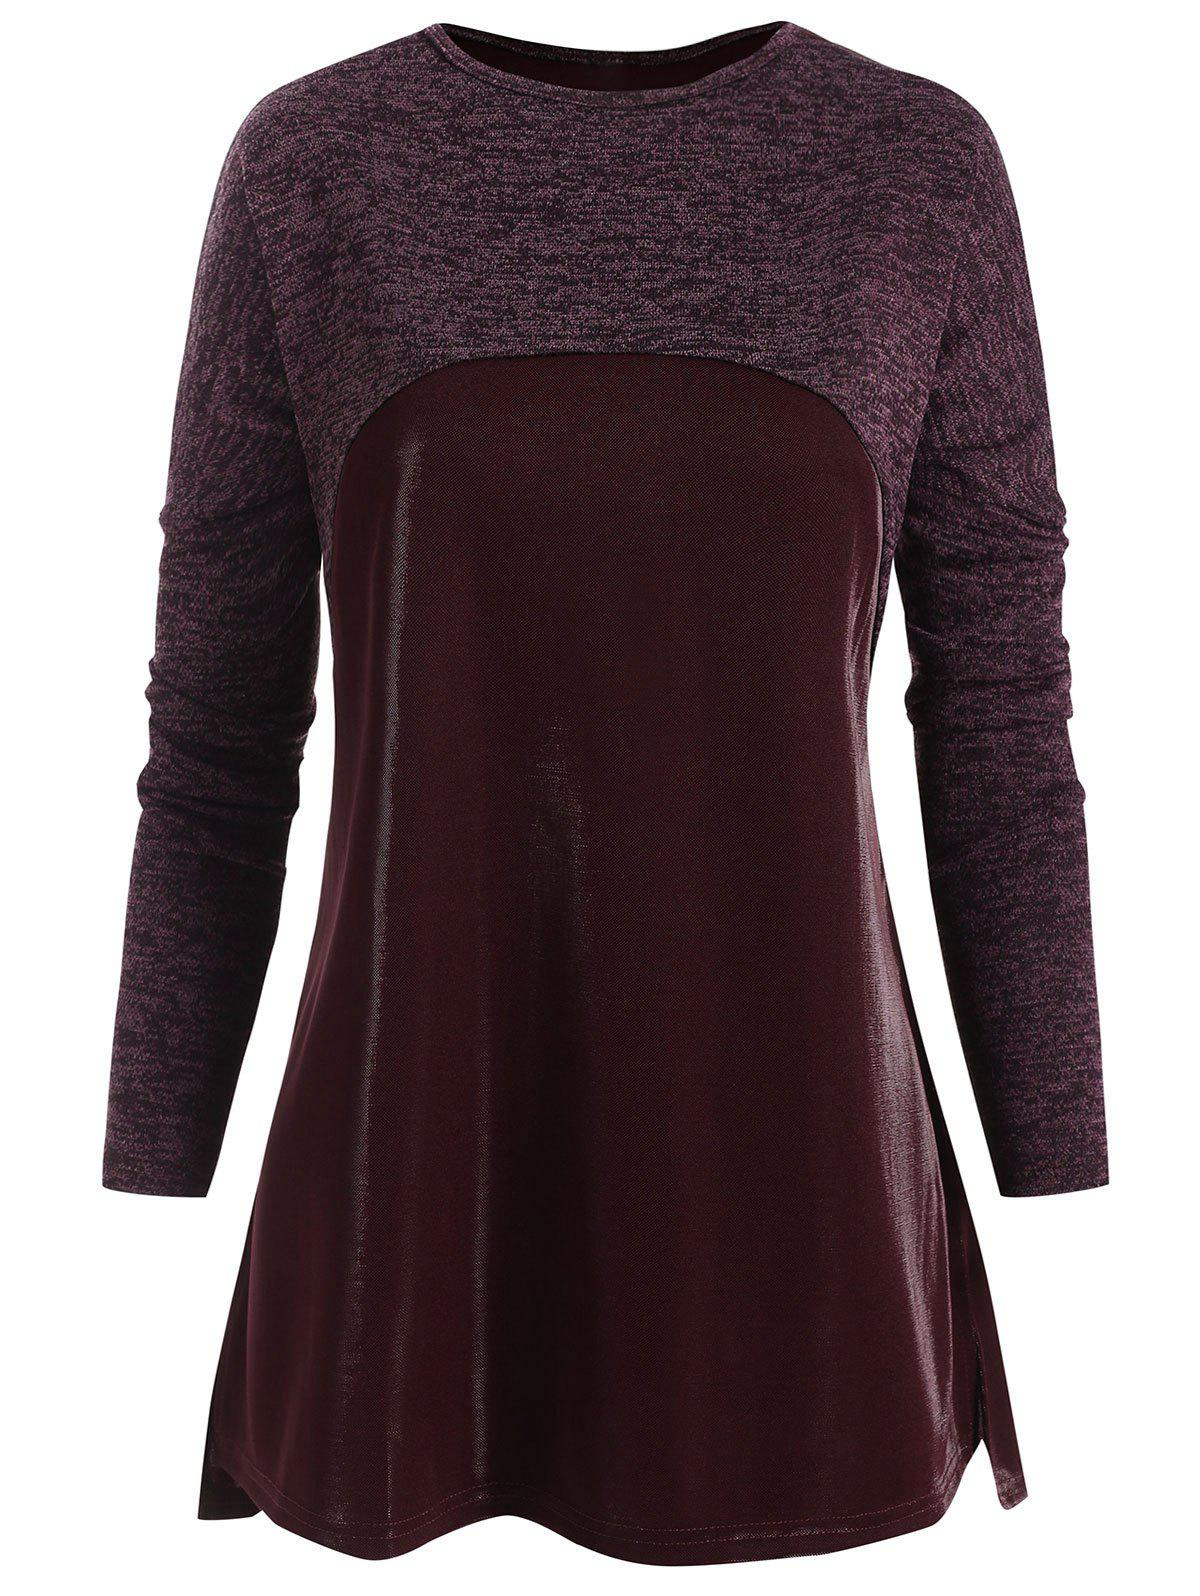 Plus Size Mixed Media Heathered Tunic Top - RED WINE 1X